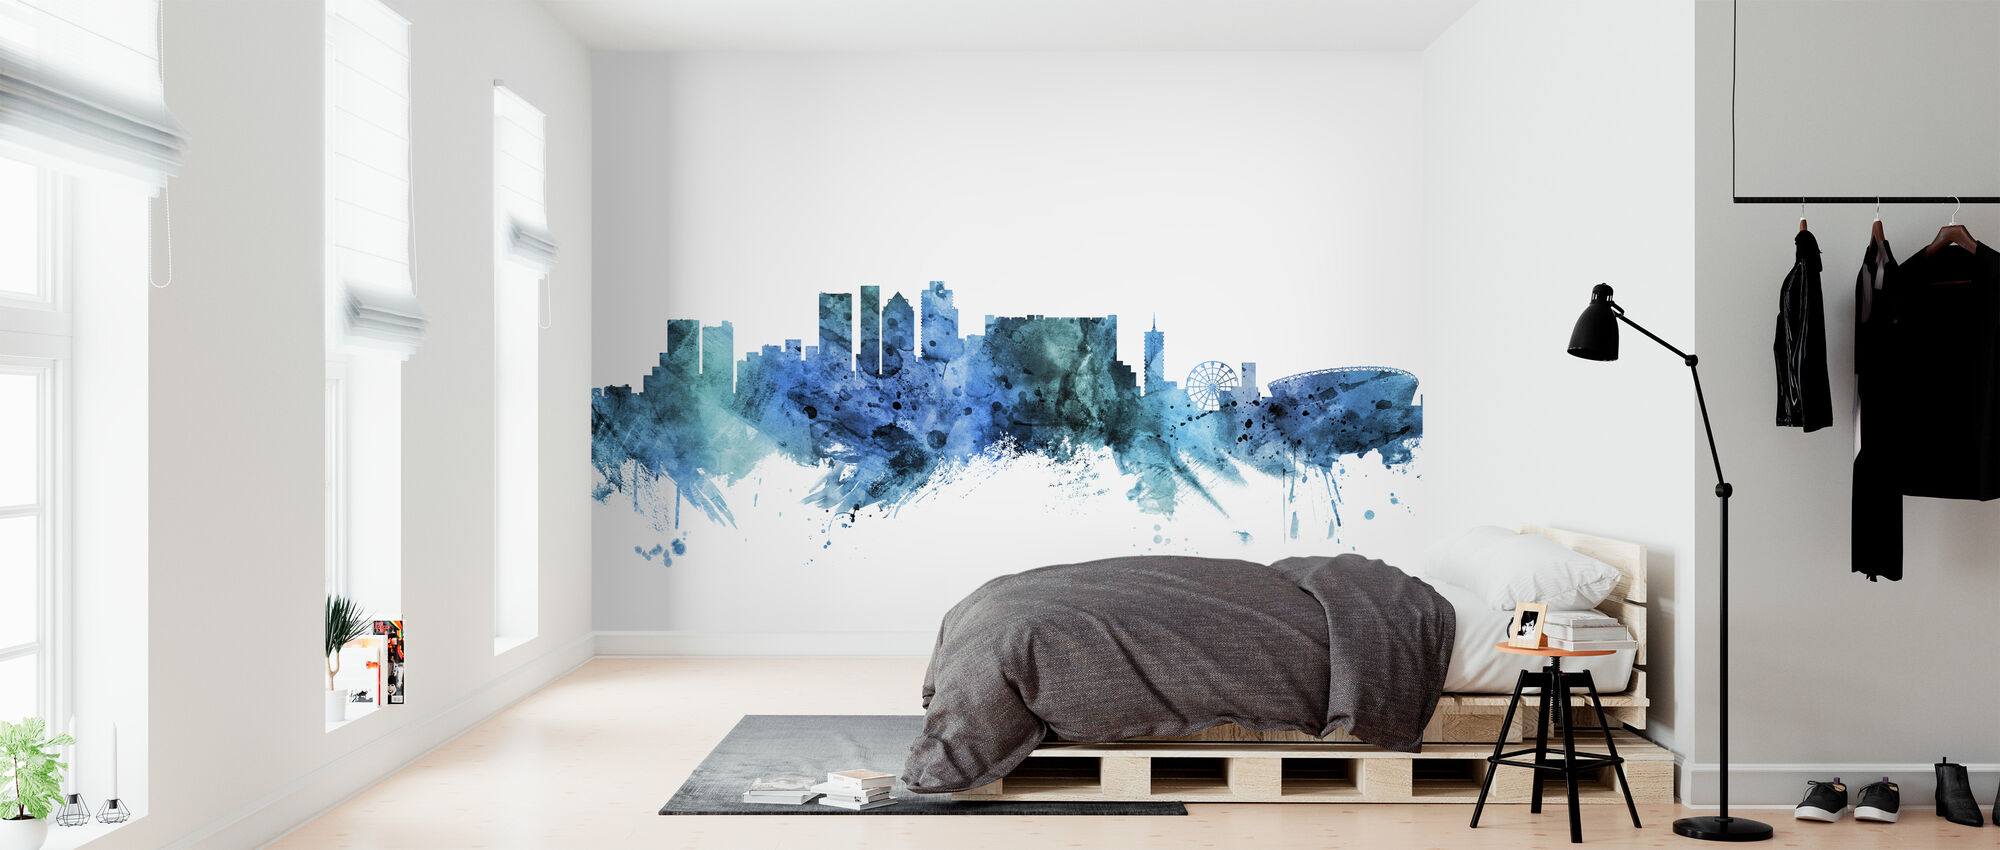 Cape Town South Africa Skyline - Wallpaper - Bedroom